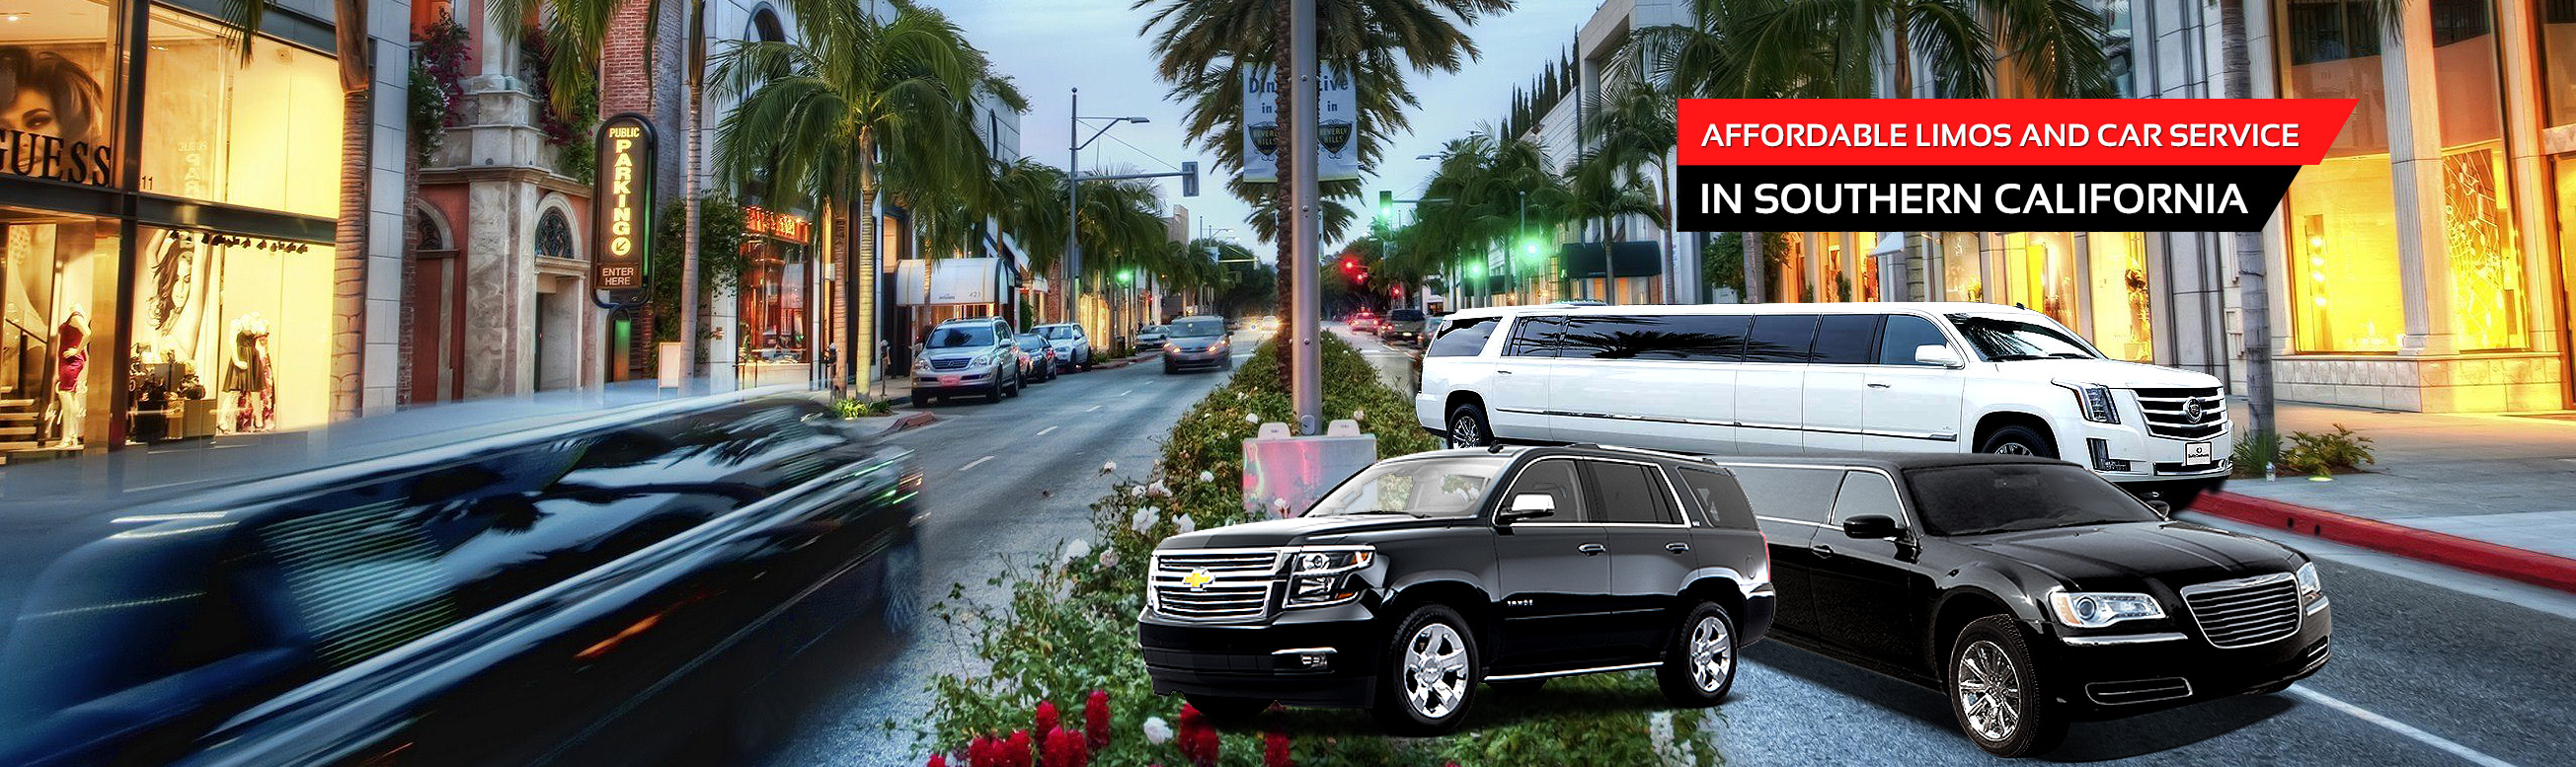 limo company owner connected - HD2609×777